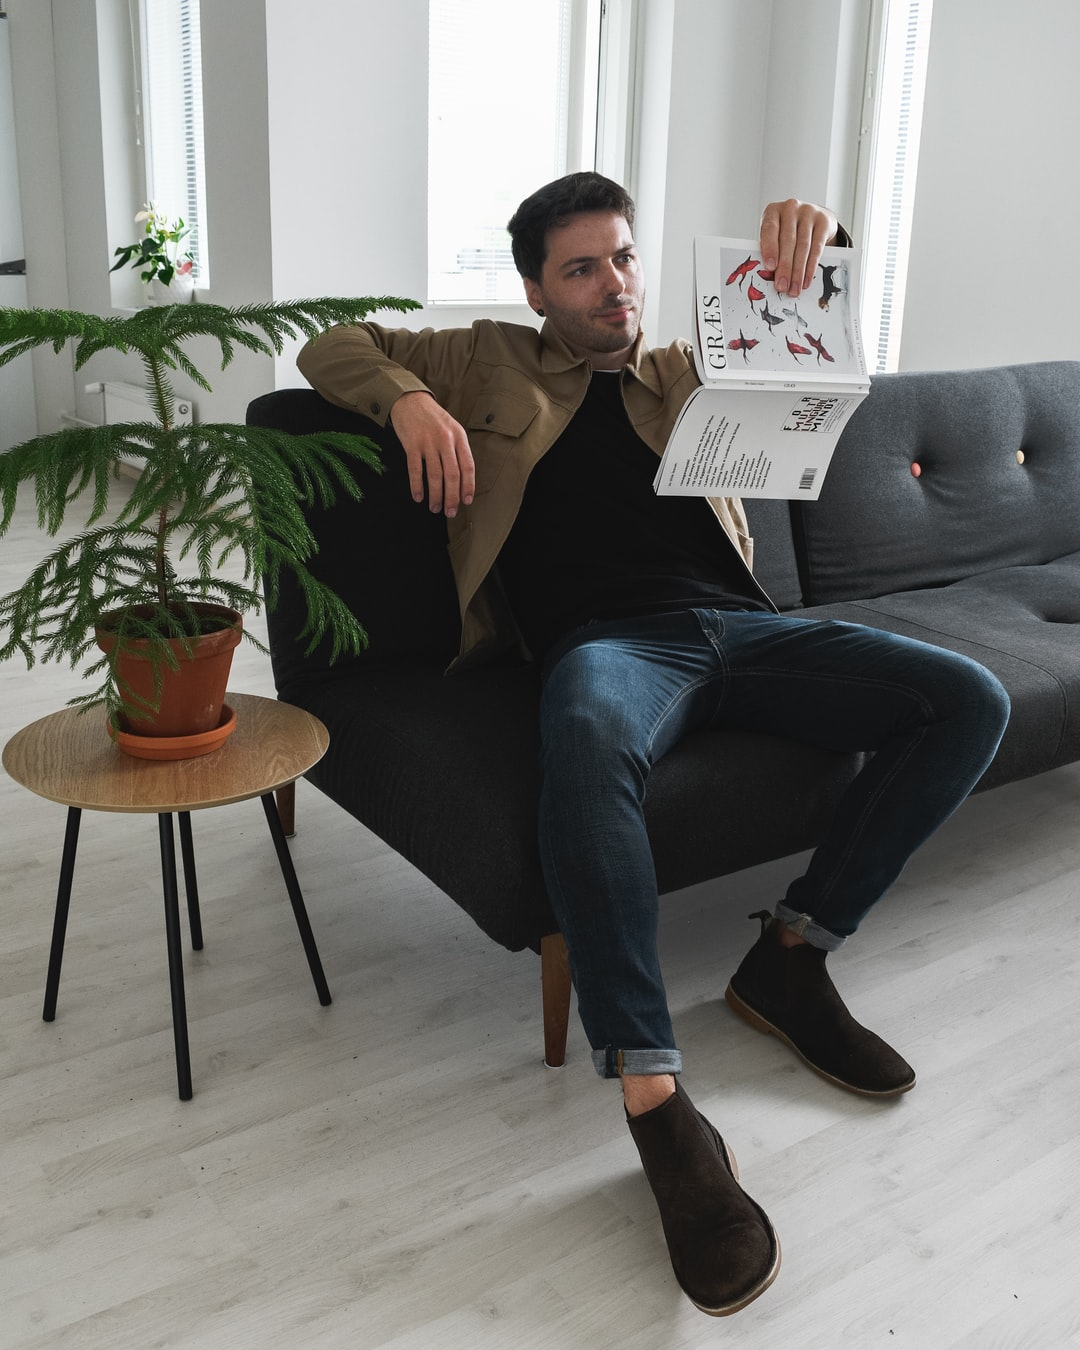 Jon reading a vertically-printed article in GRÆS Magazine